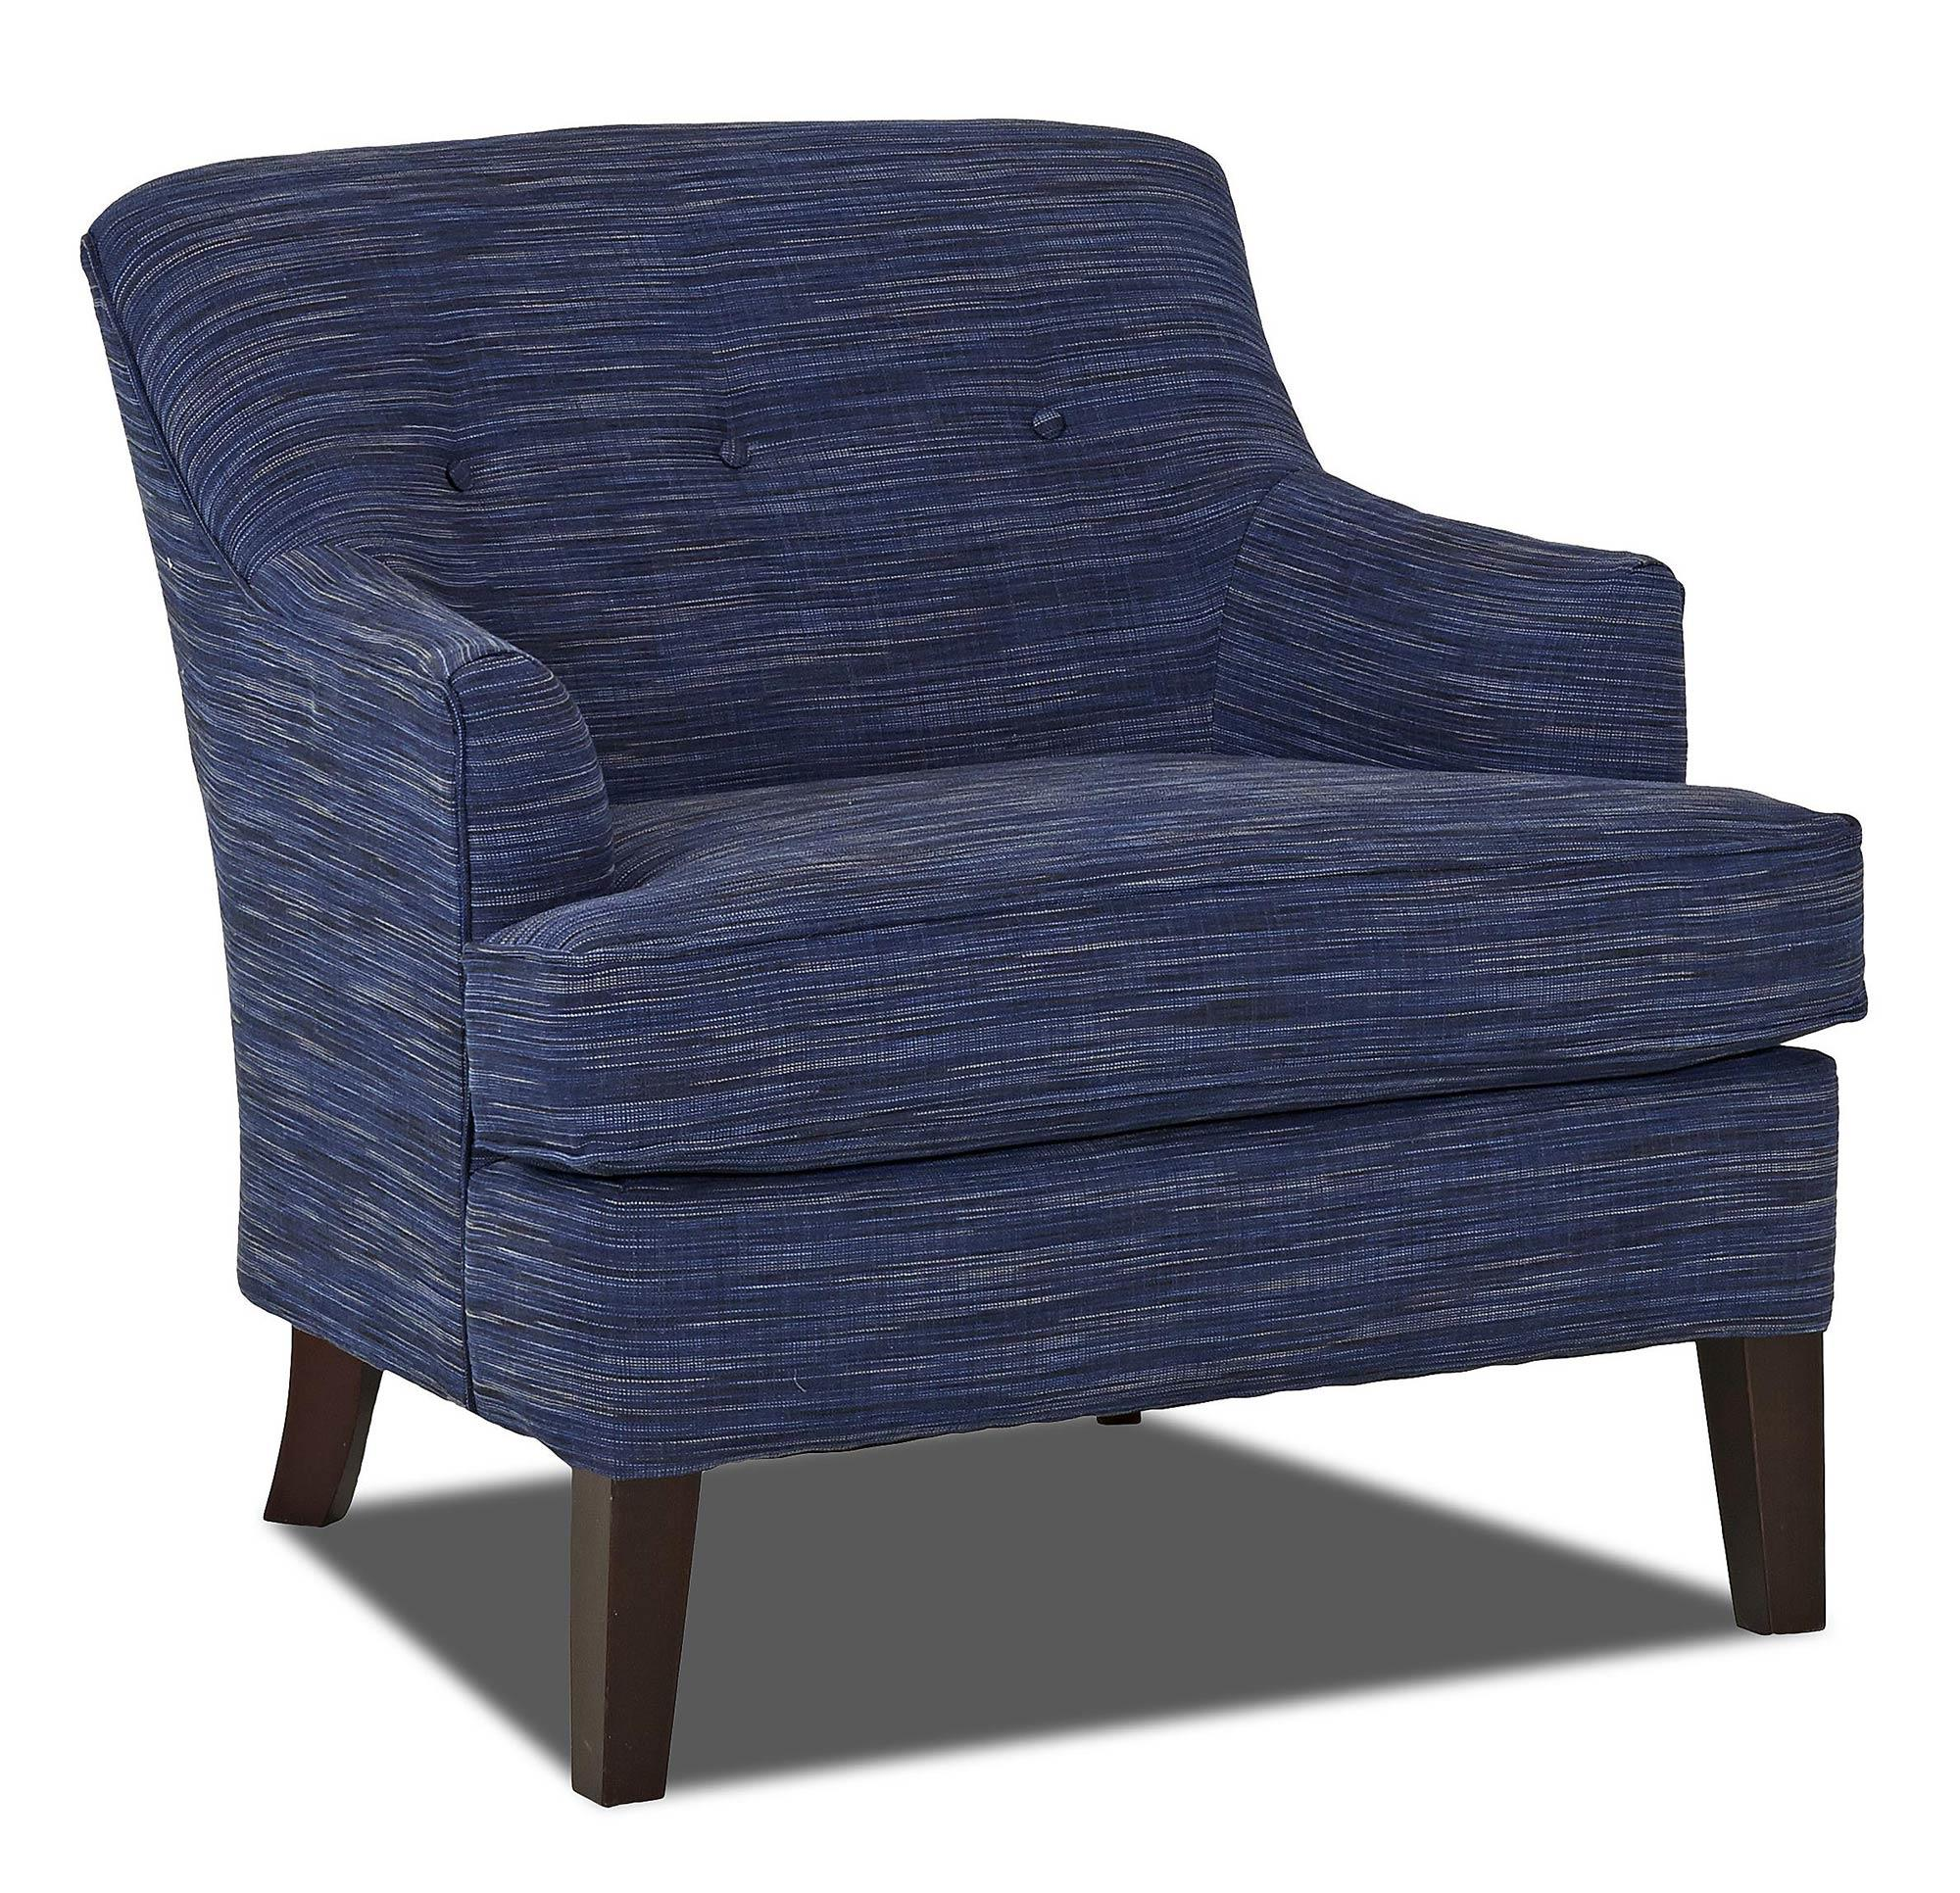 Trisha Yearwood Home Collection by Klaussner Elizabeth Occasional Chair - Item Number: K71800 OC-LaneyNavy